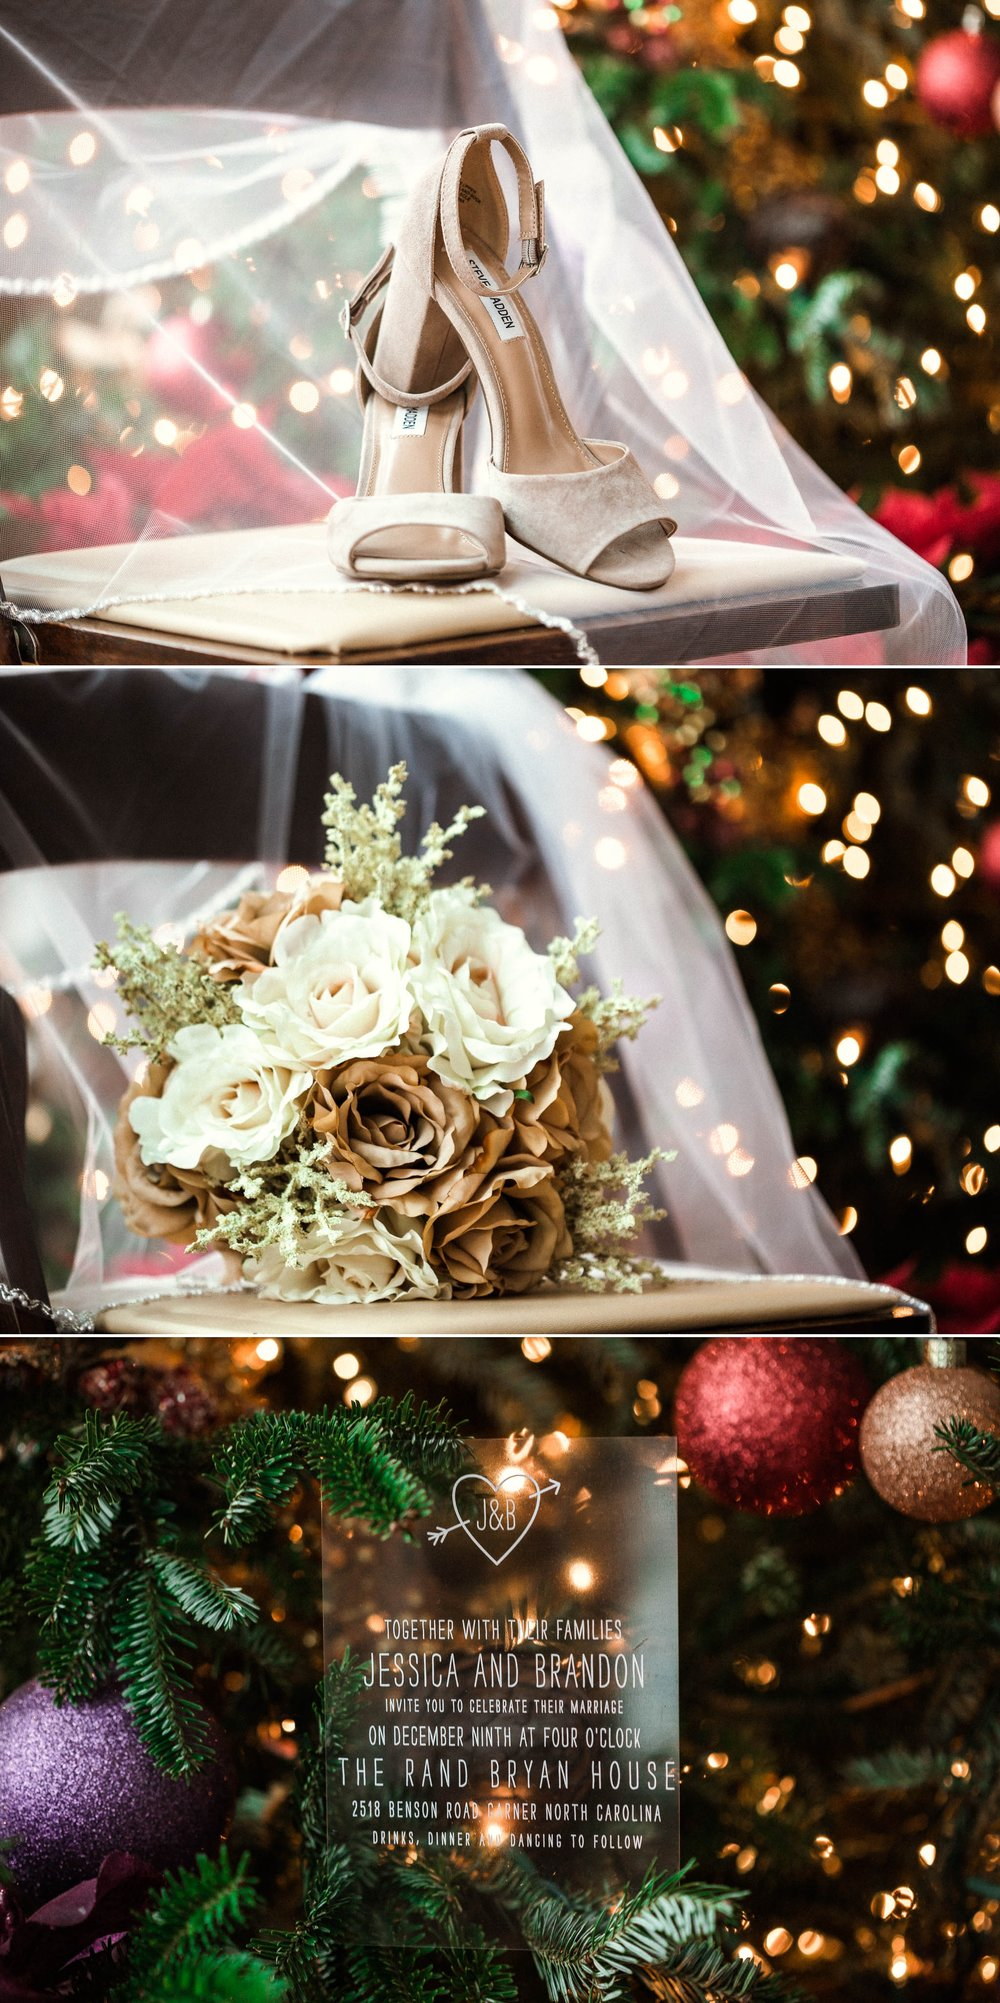 Bridal Details with the Christmas Tree as Bookeh Backdrop - Jessica + Brandon - Snowy Winter Wedding at the Rand Bryan House in Garner, NC - Raleigh North Carolina Wedding Photographer